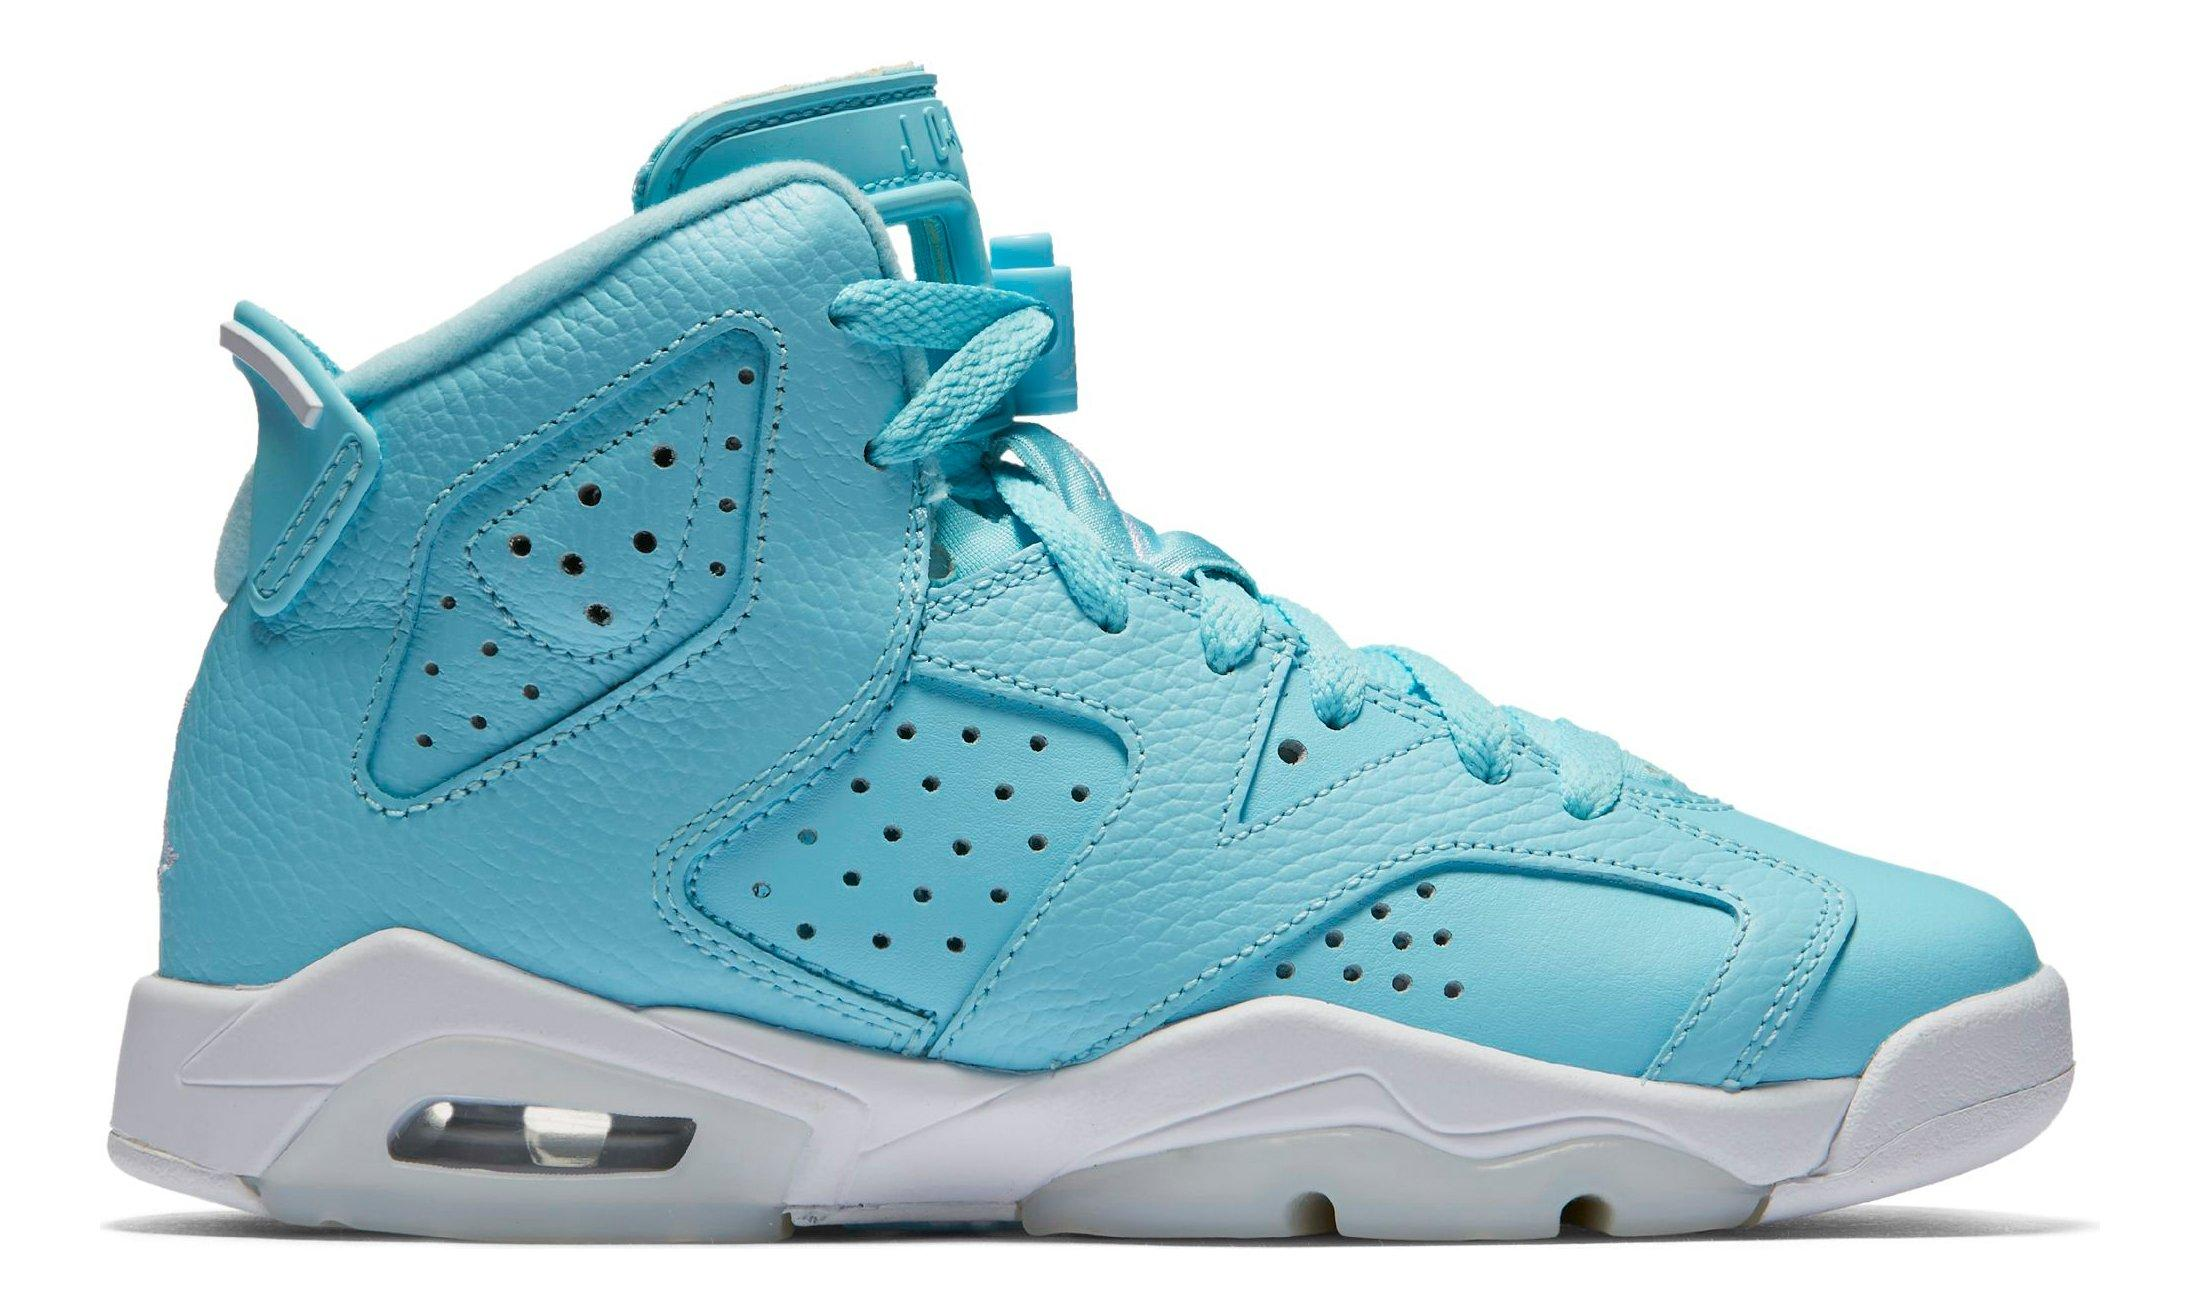 new product 72867 b76a1 50% off nike air jordans in white or blue for jr girls ef5f8 a3738